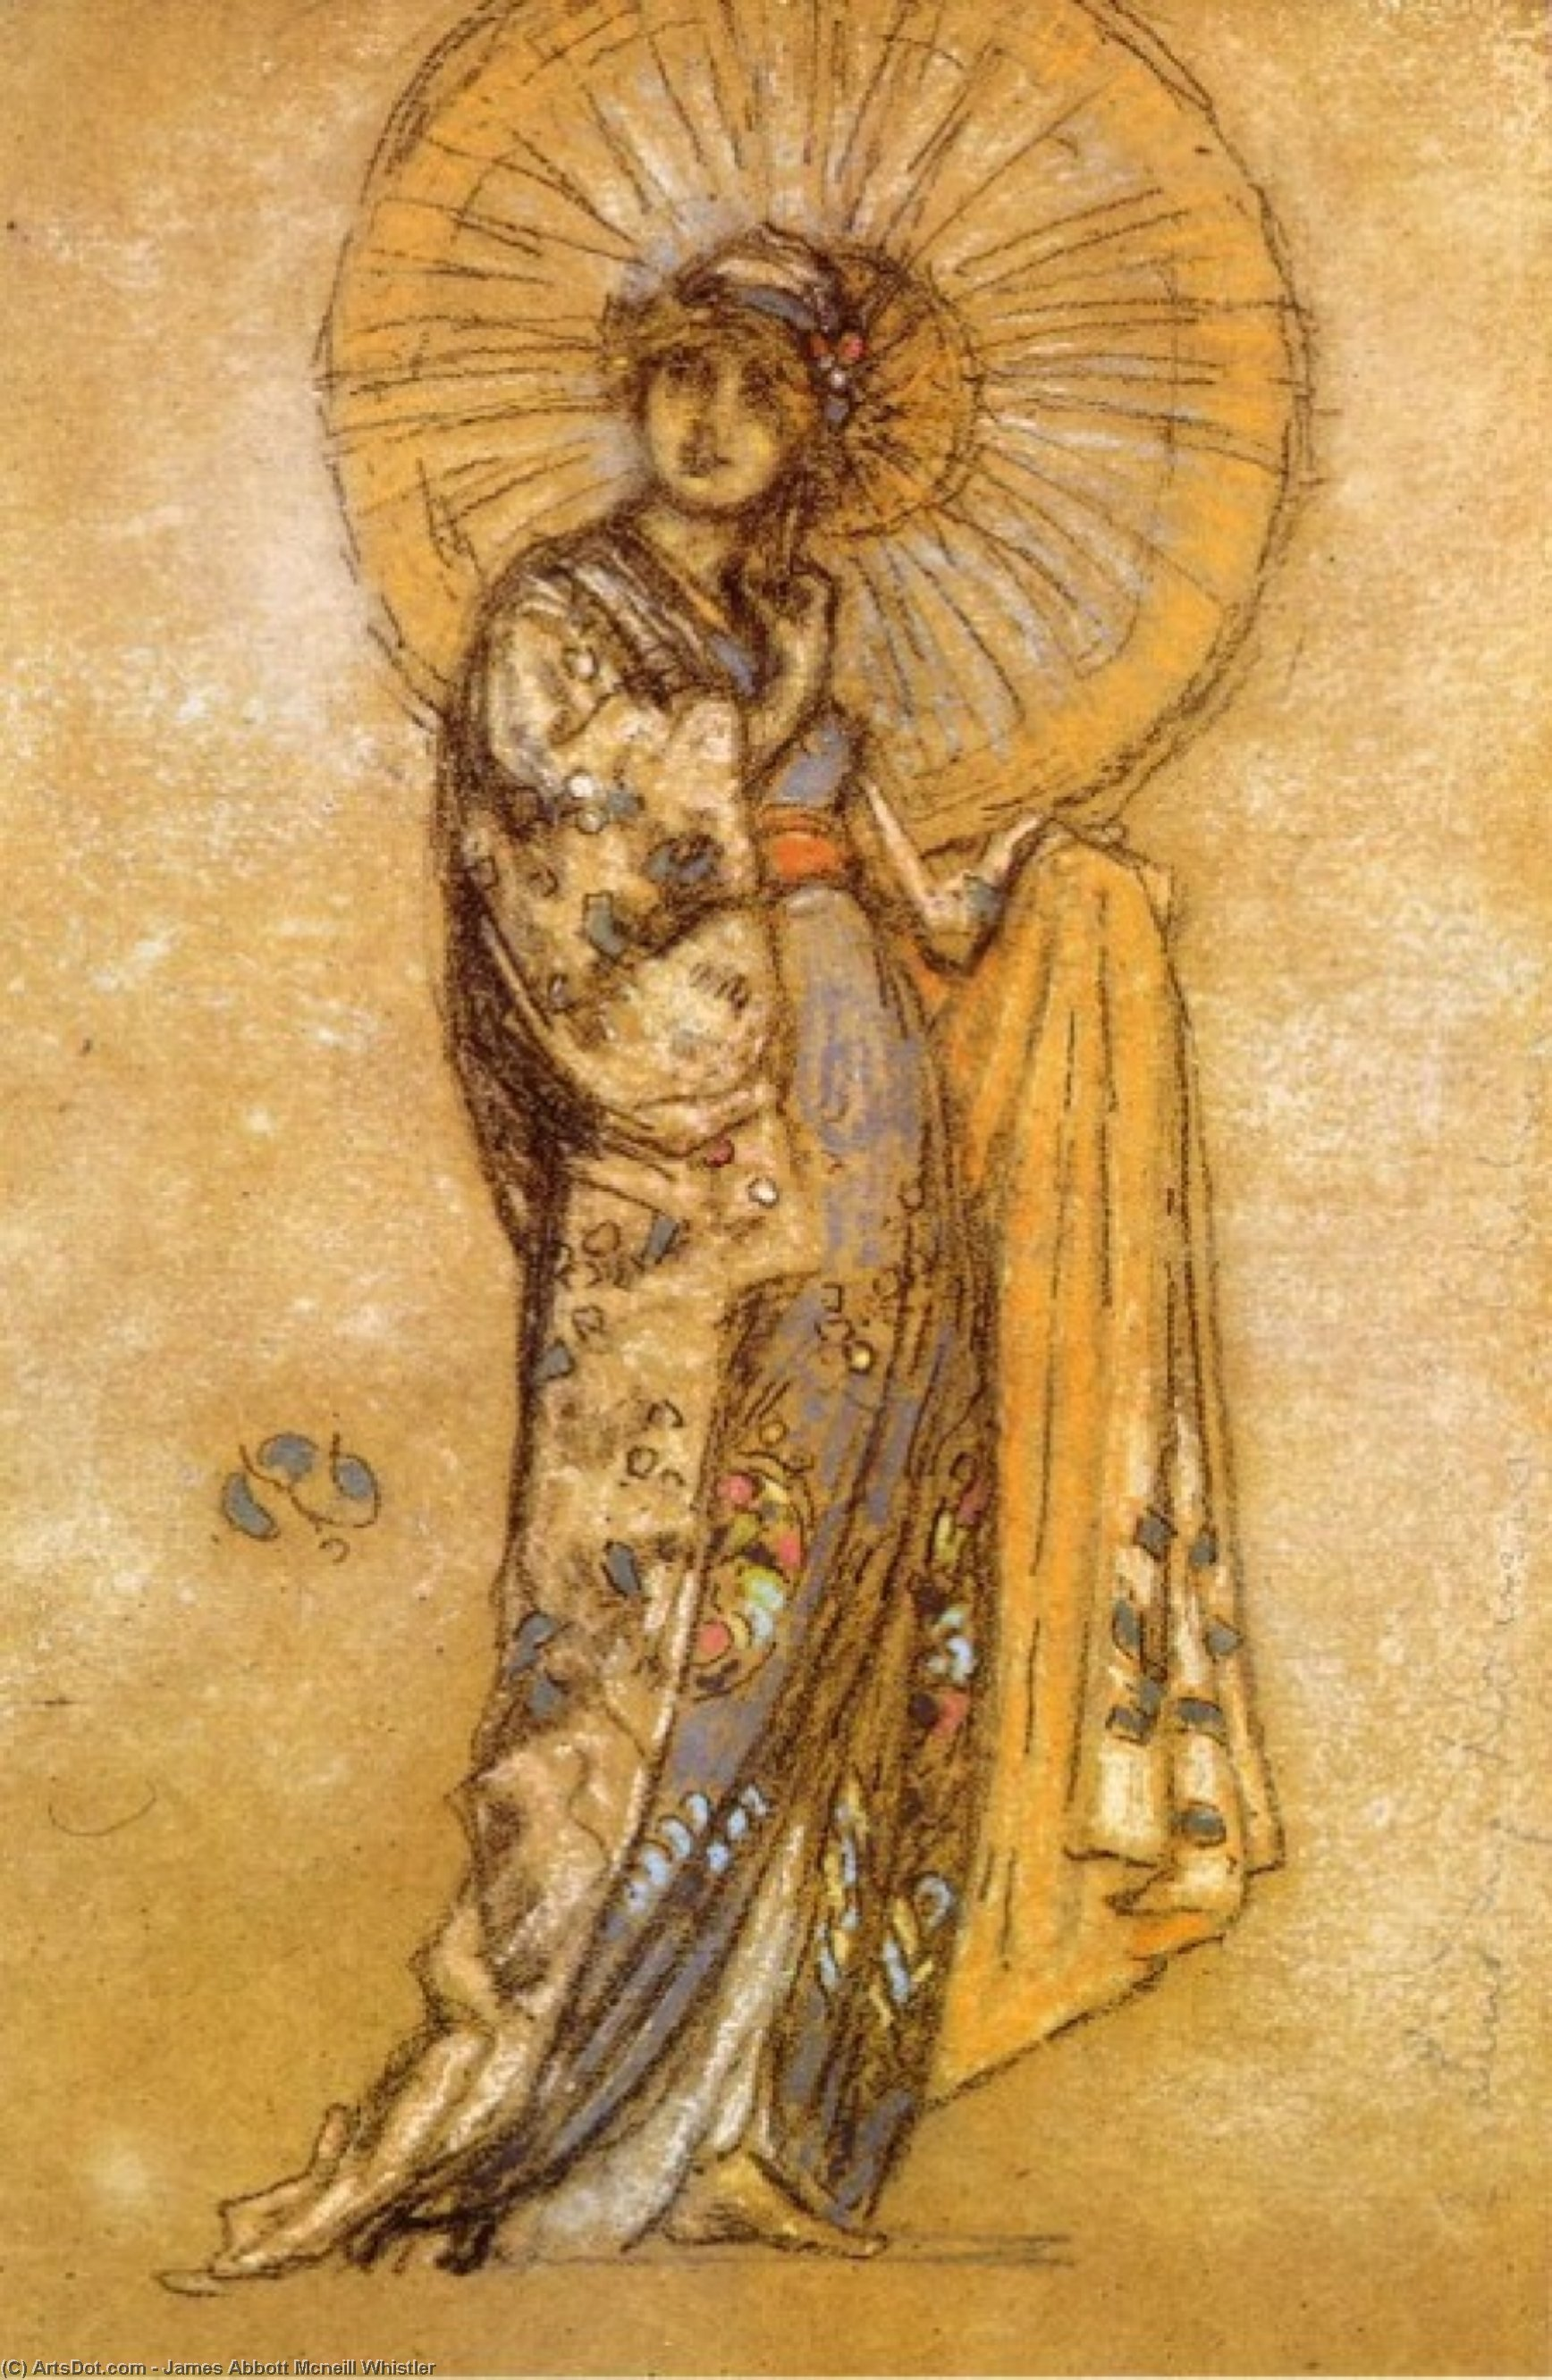 Wikioo.org - The Encyclopedia of Fine Arts - Painting, Artwork by James Abbott Mcneill Whistler - The Japanese Dress